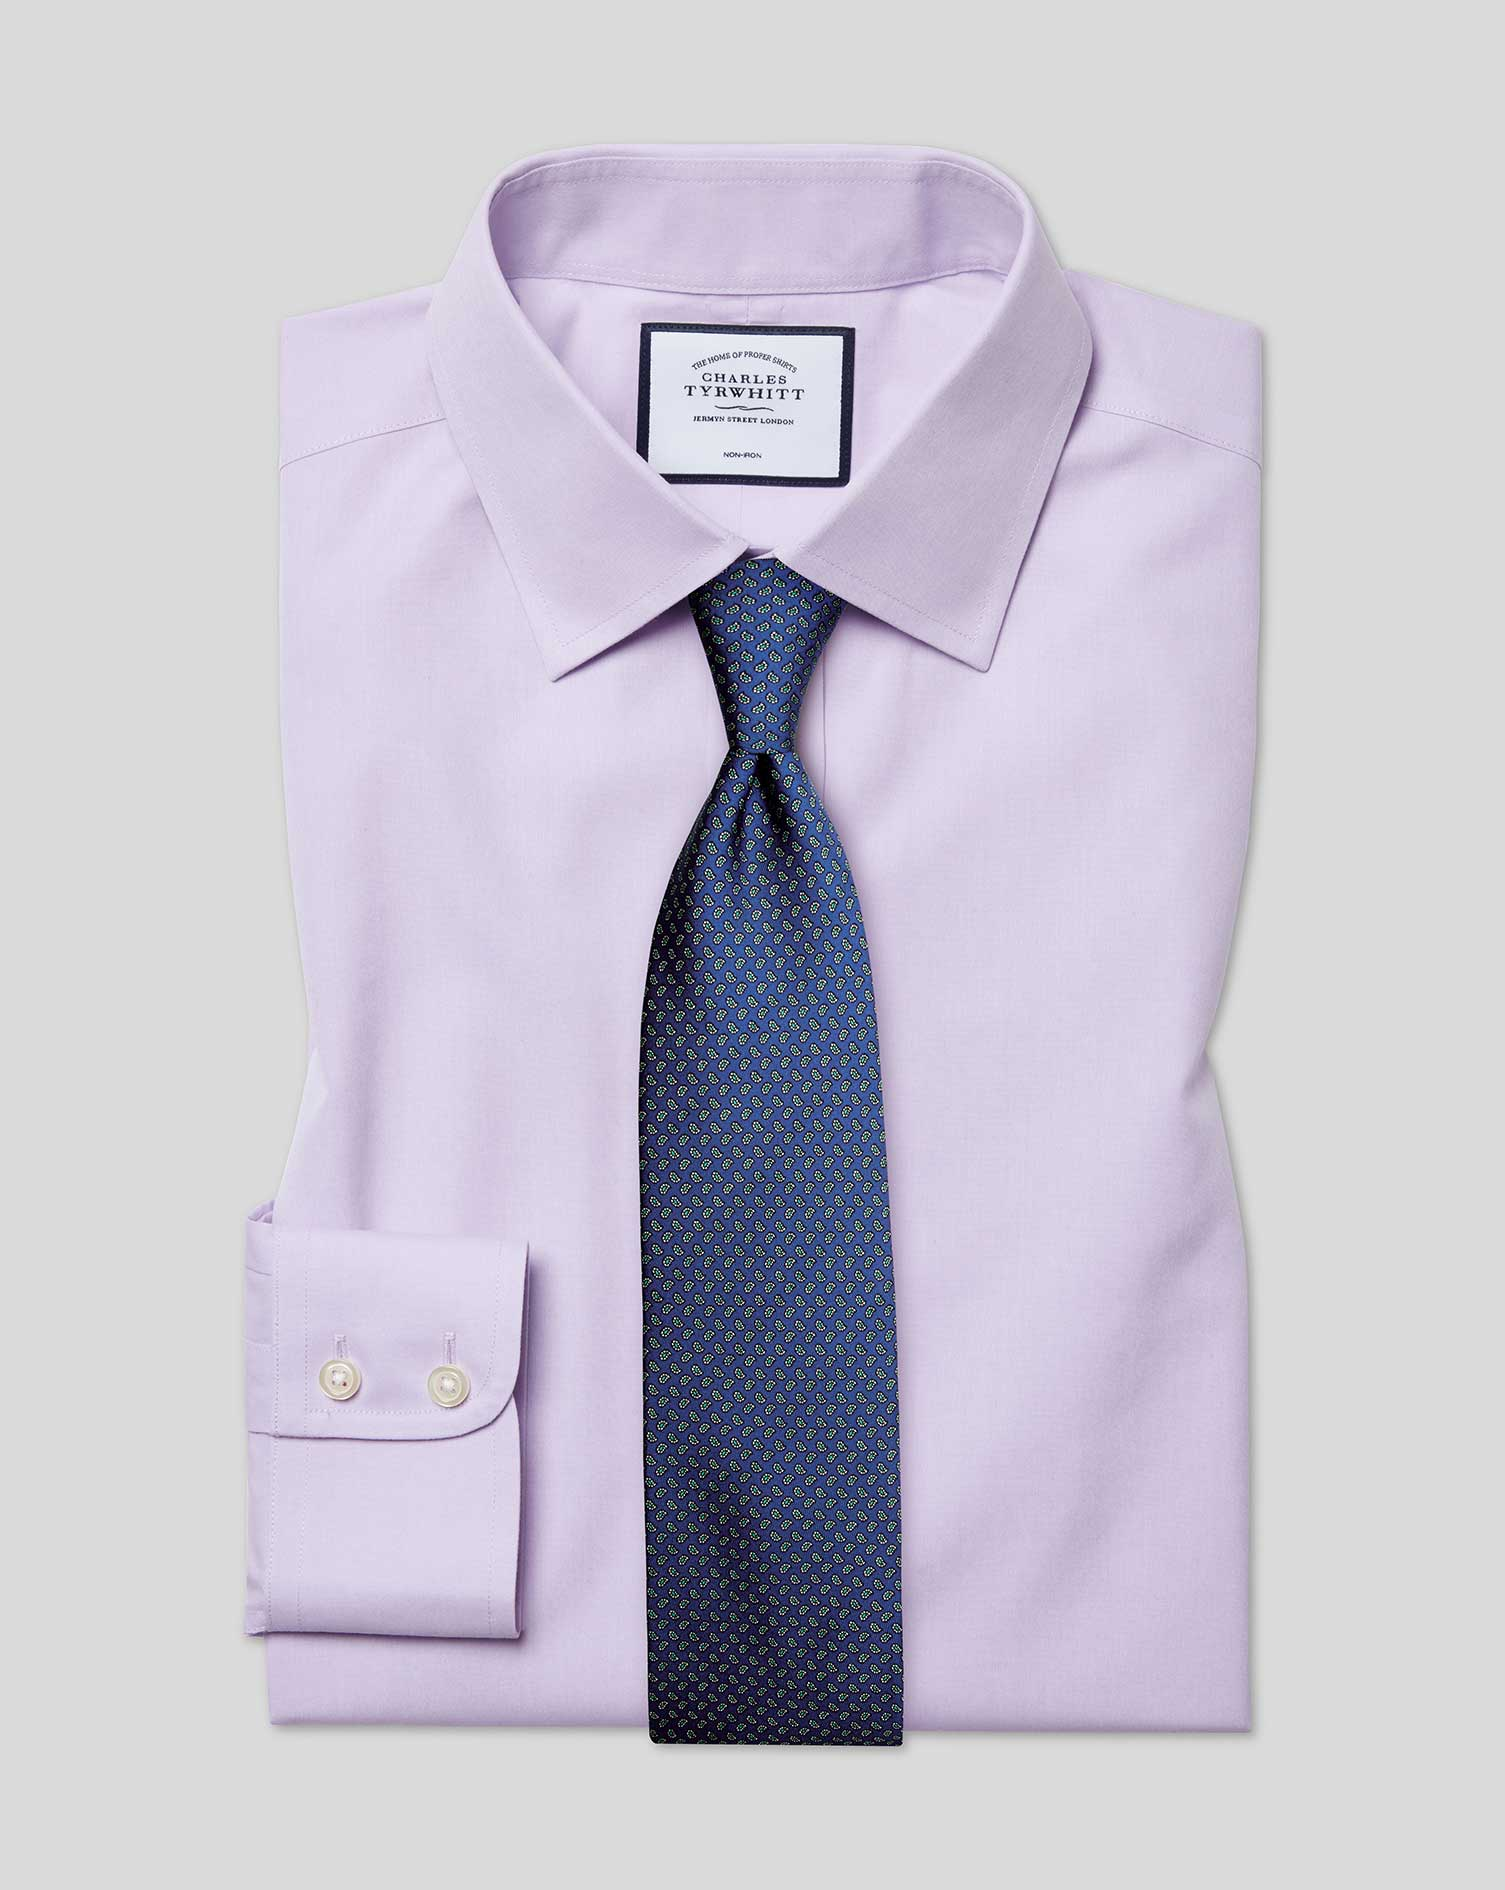 Classic Fit Non-Iron Poplin Lilac Cotton Formal Shirt Double Cuff Size 17.5/36 by Charles Tyrwhitt